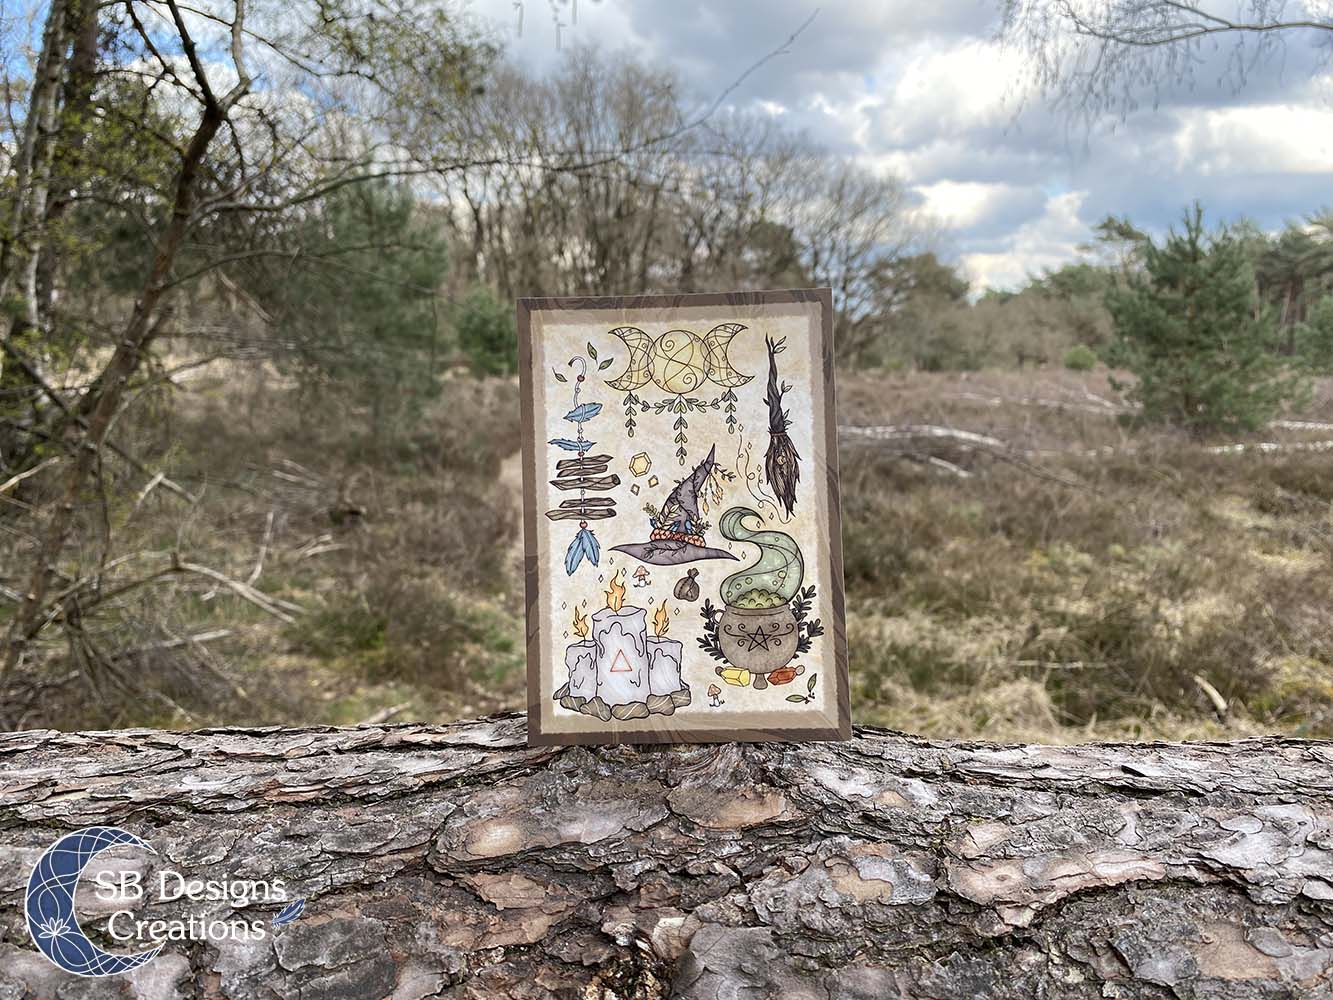 Witchy-Vibes-SB-Designs-Creations-Heksendingen